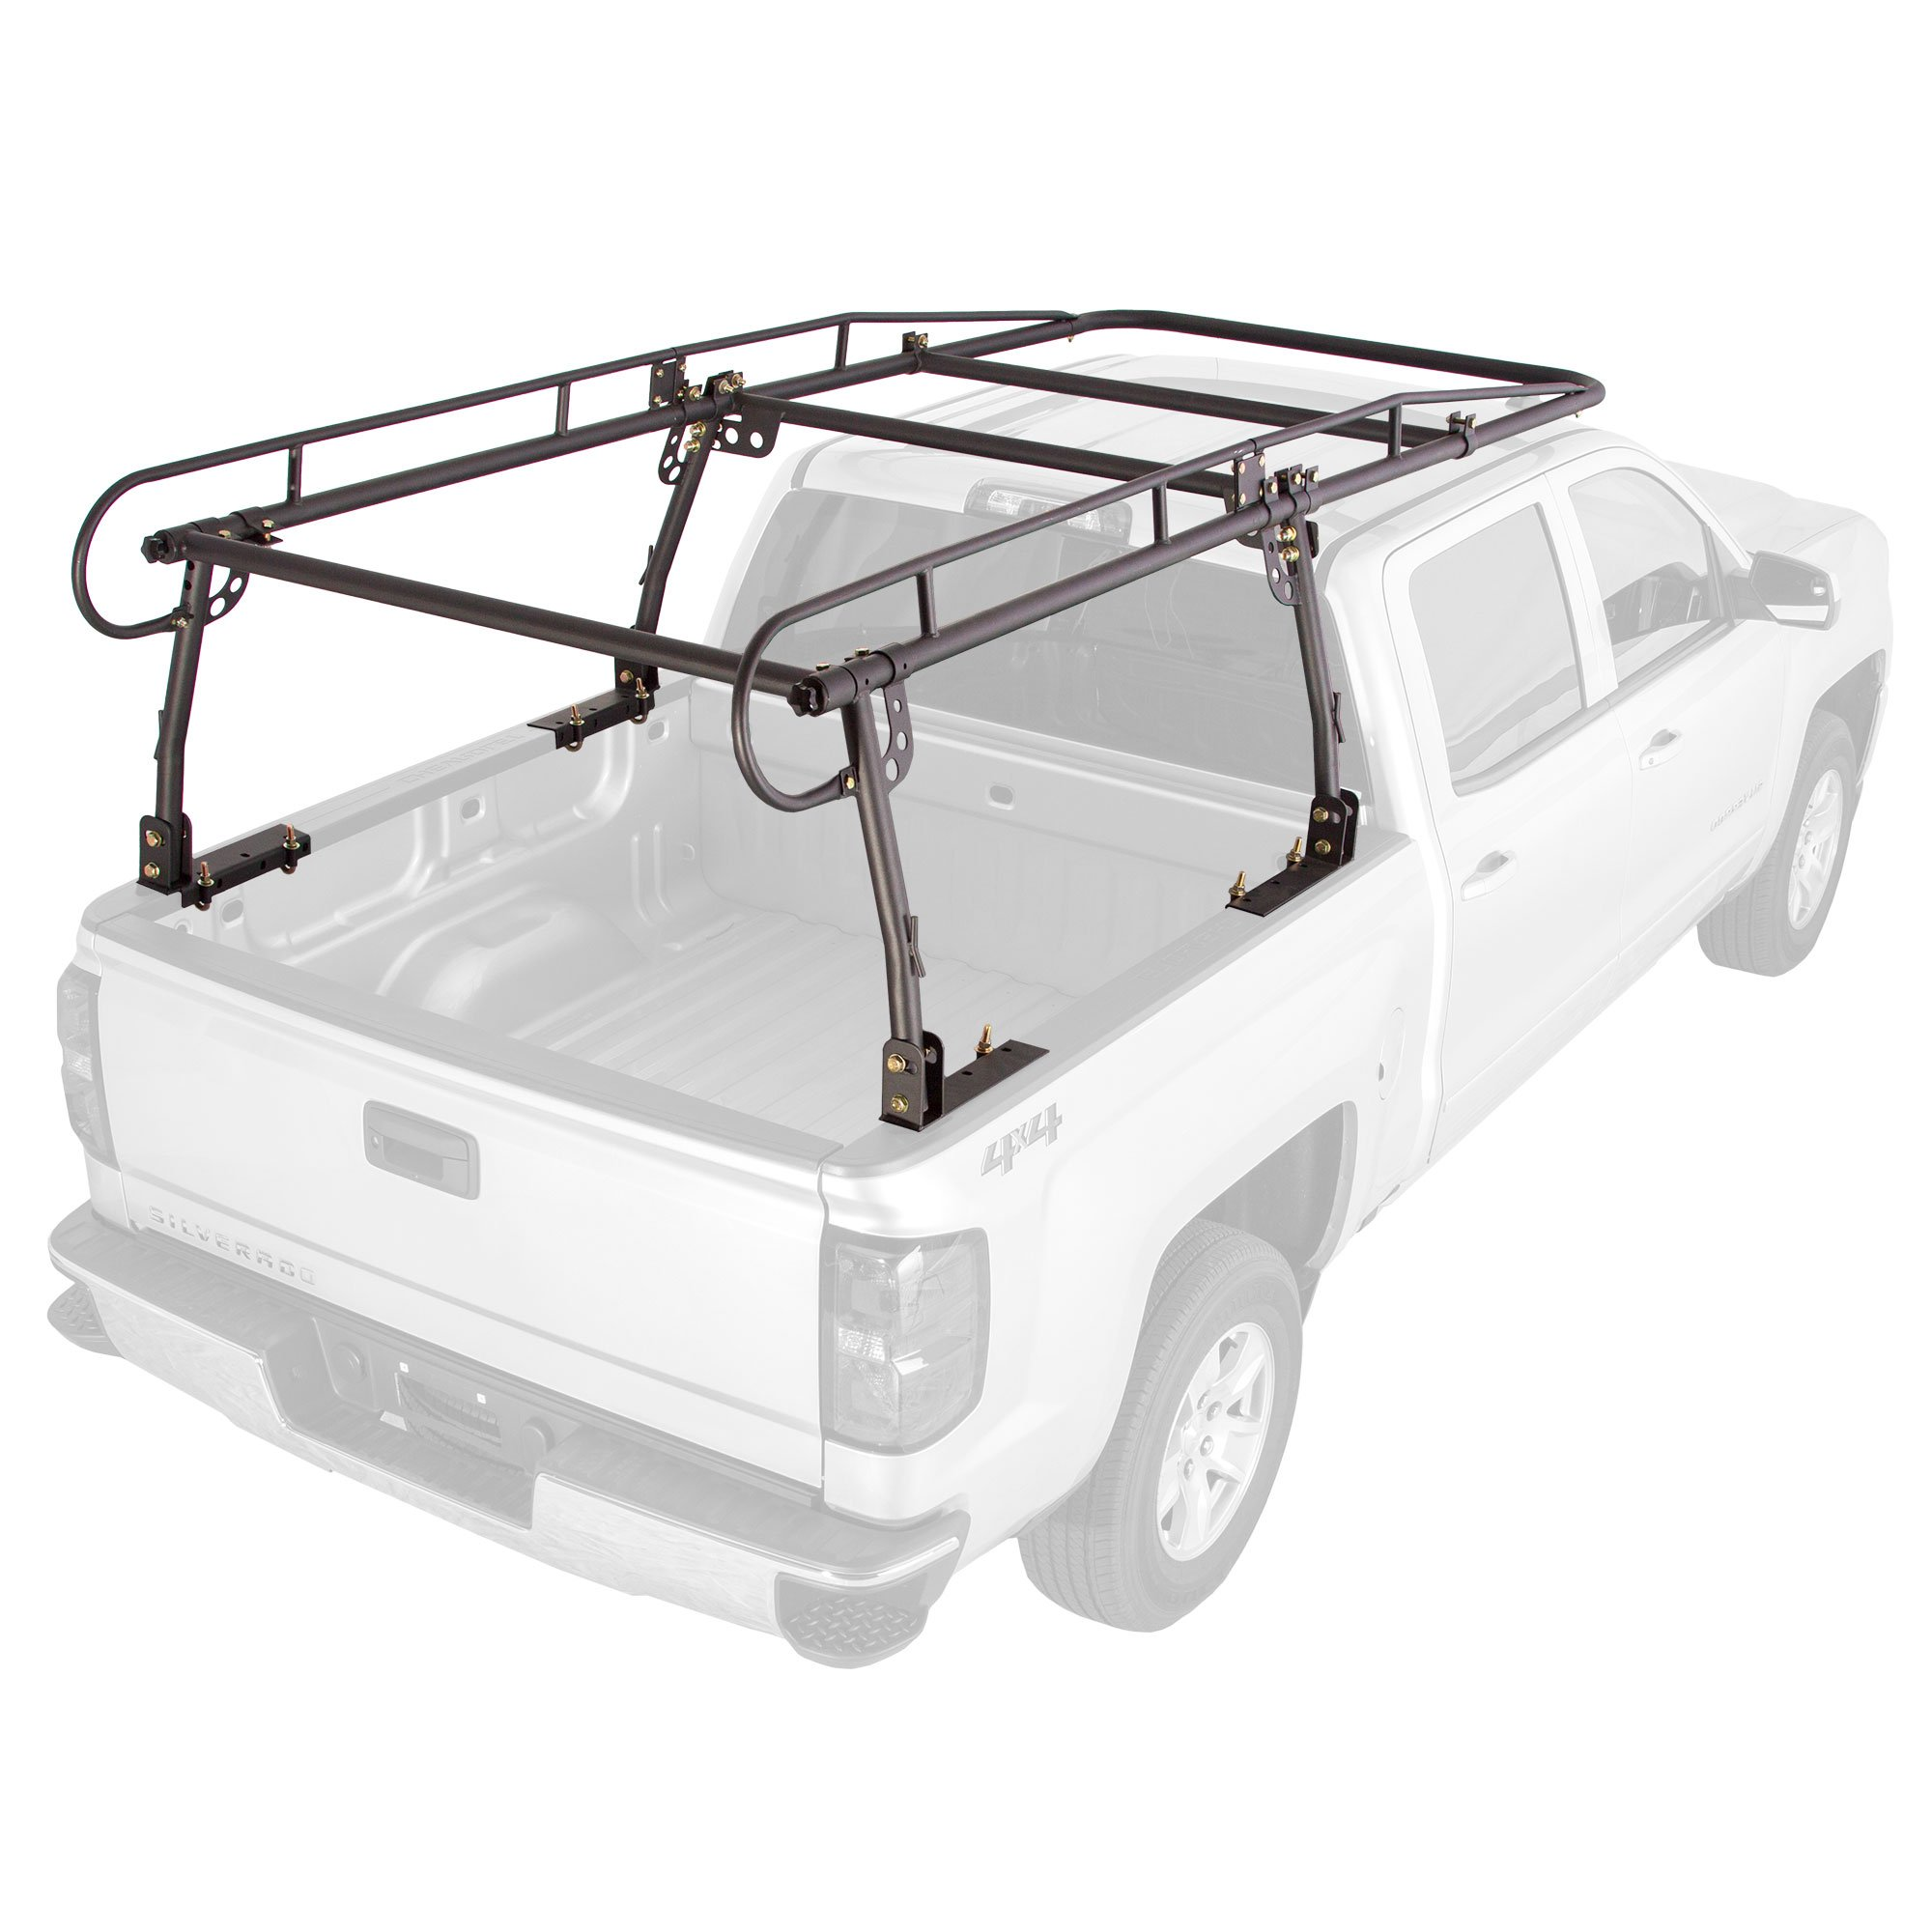 racks for w accessories bakflip archives inc product rack cover truck suv category cs the ladder tonneau hitchman